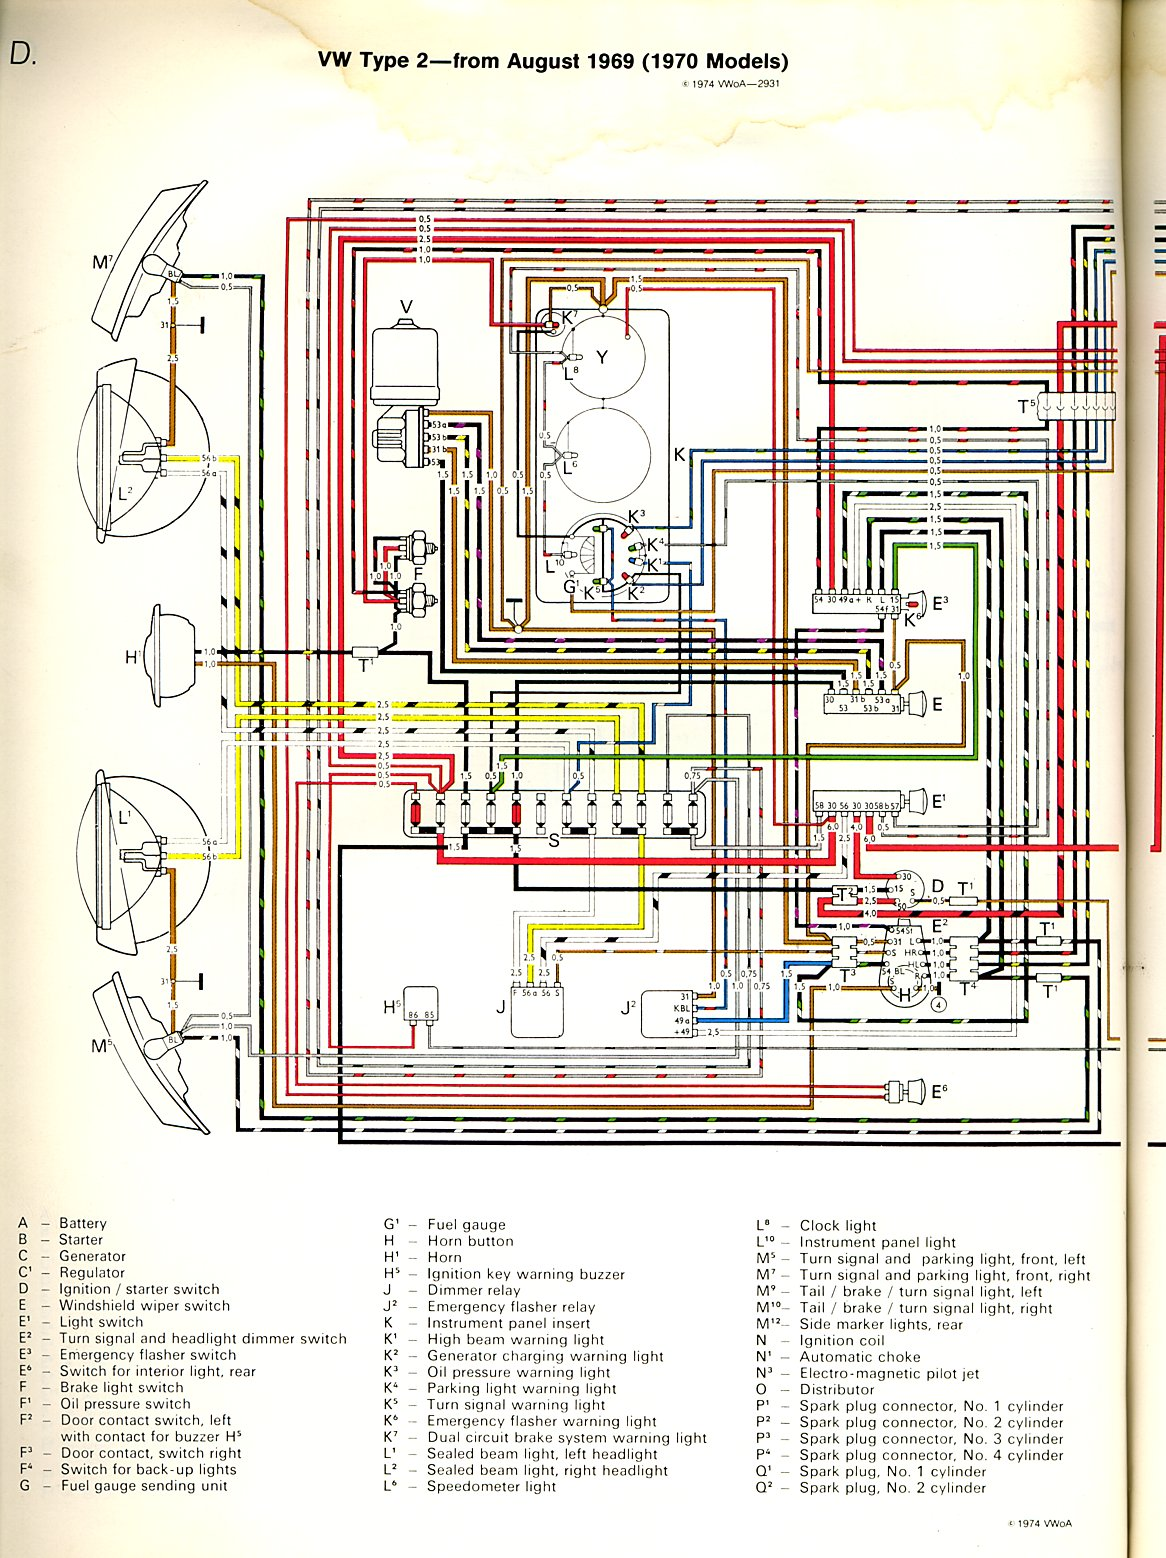 baybus_70a thesamba com type 2 wiring diagrams vw t4 electric window wiring diagram at gsmx.co